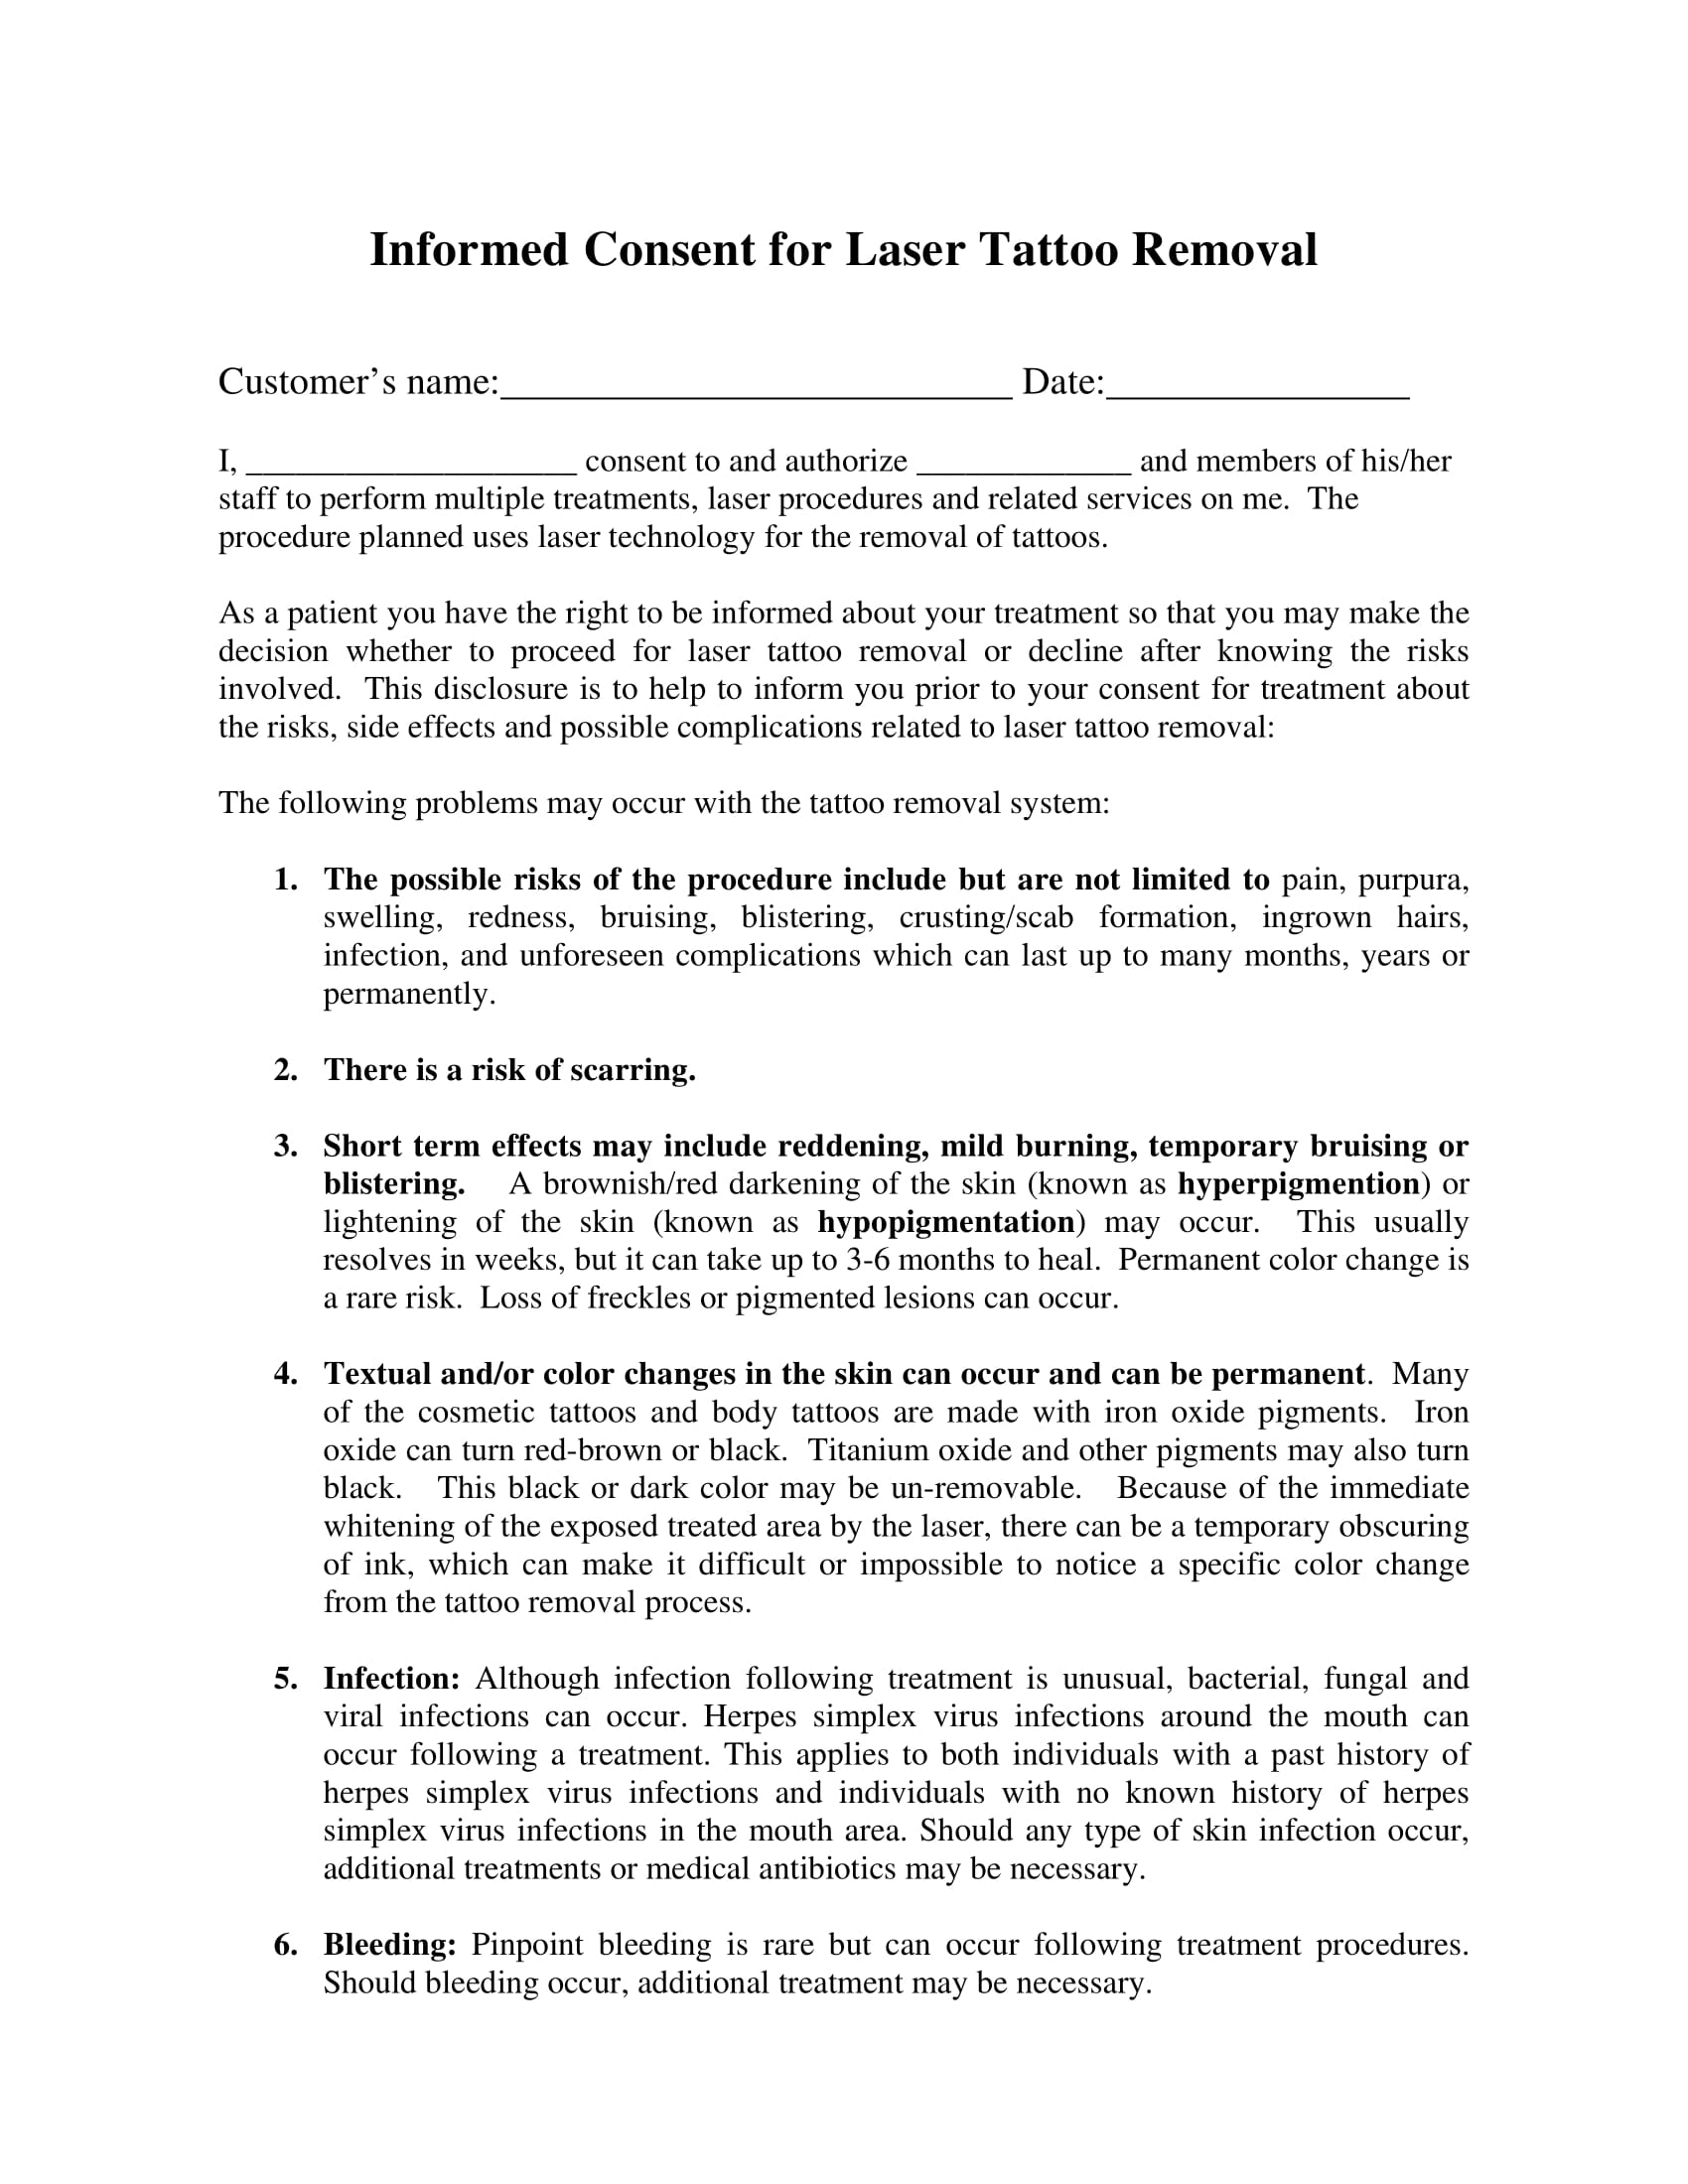 laser tattoo removal informed consent form 1